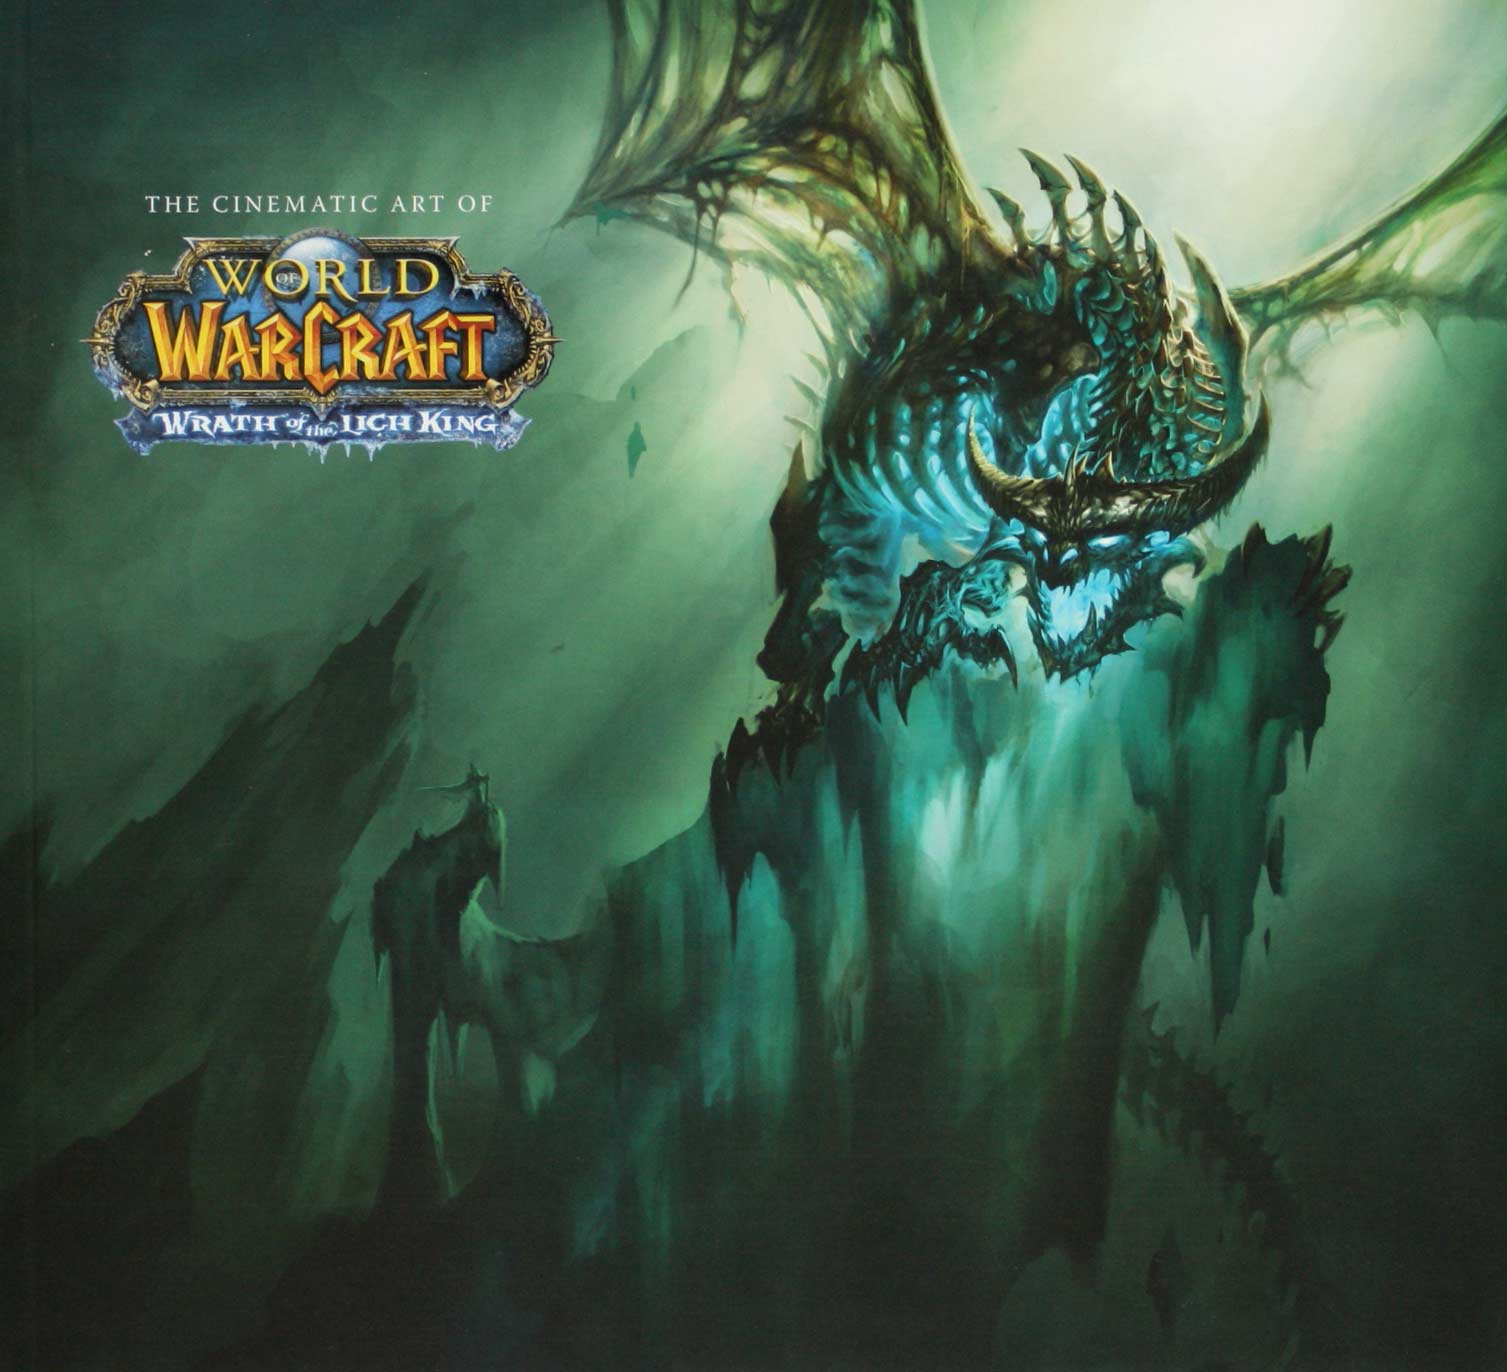 Couverture de l'art book The Cinematic Art of Warth of the Lich King (World of Warcraft)